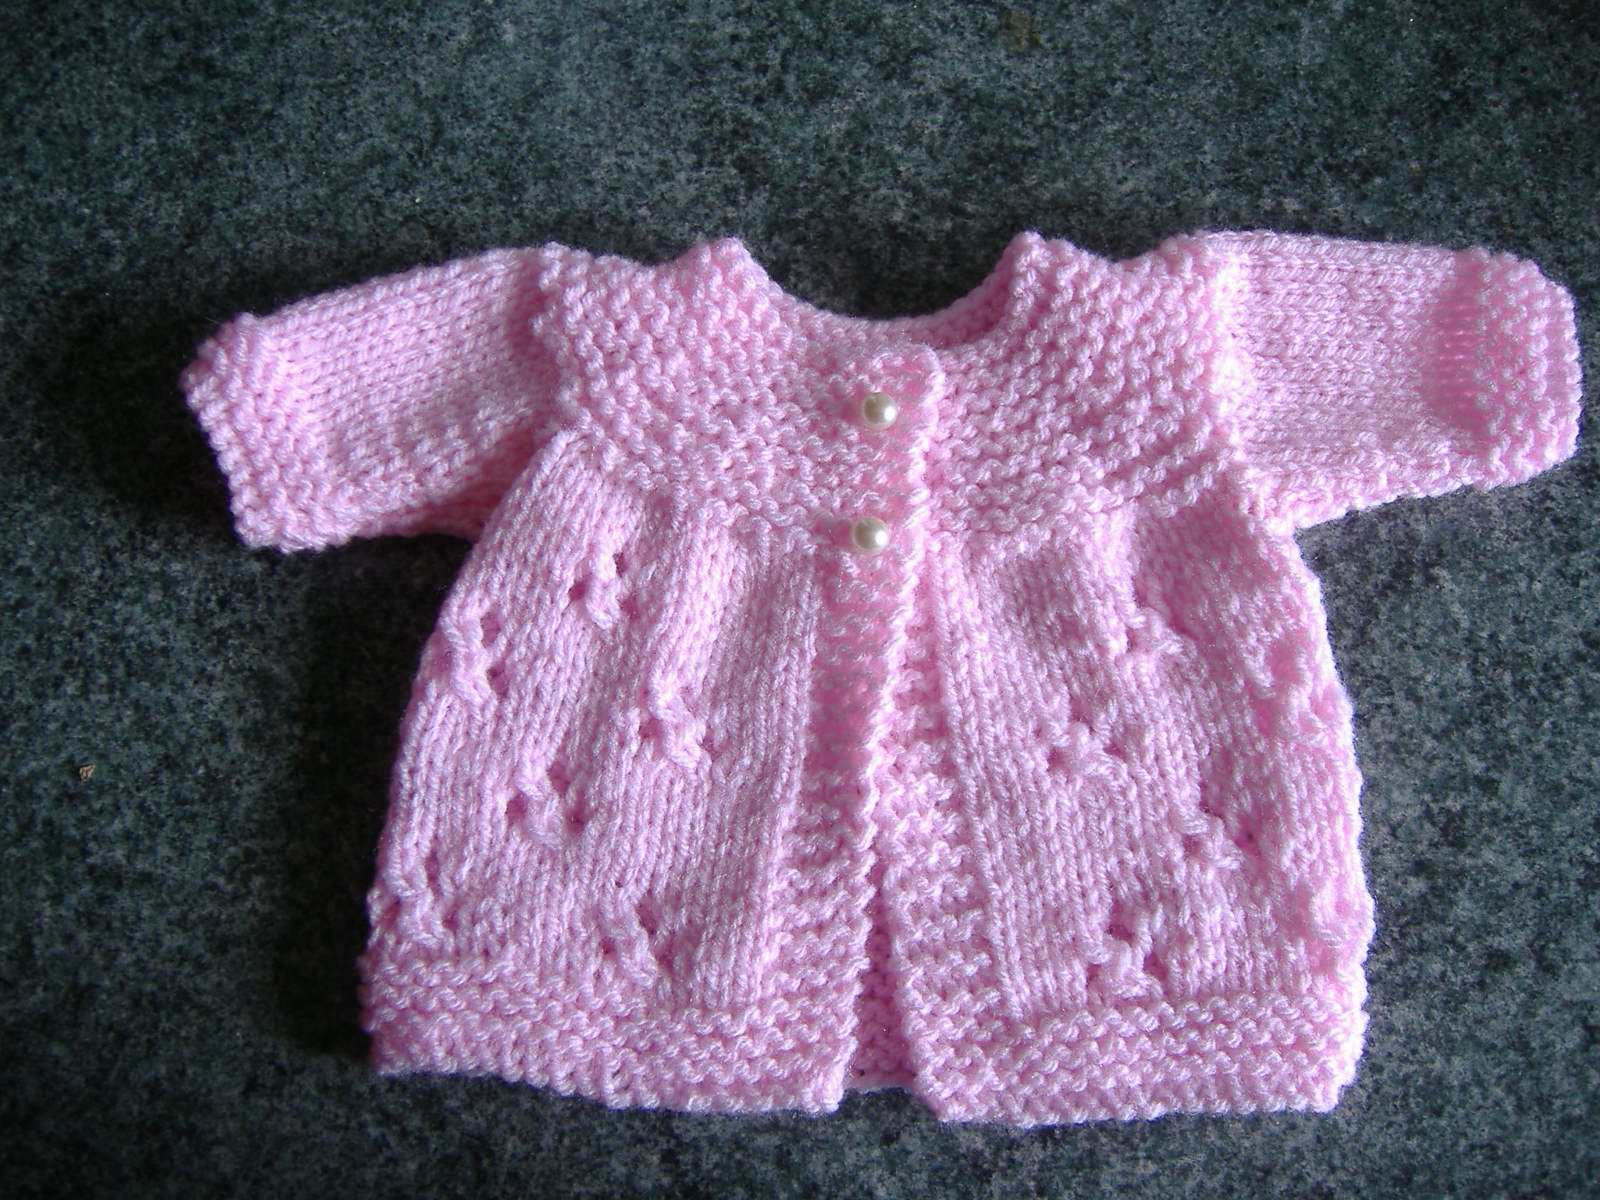 Knitting Patterns For Premature Babies : mariannas lazy daisy days: Premature Baby Jackets